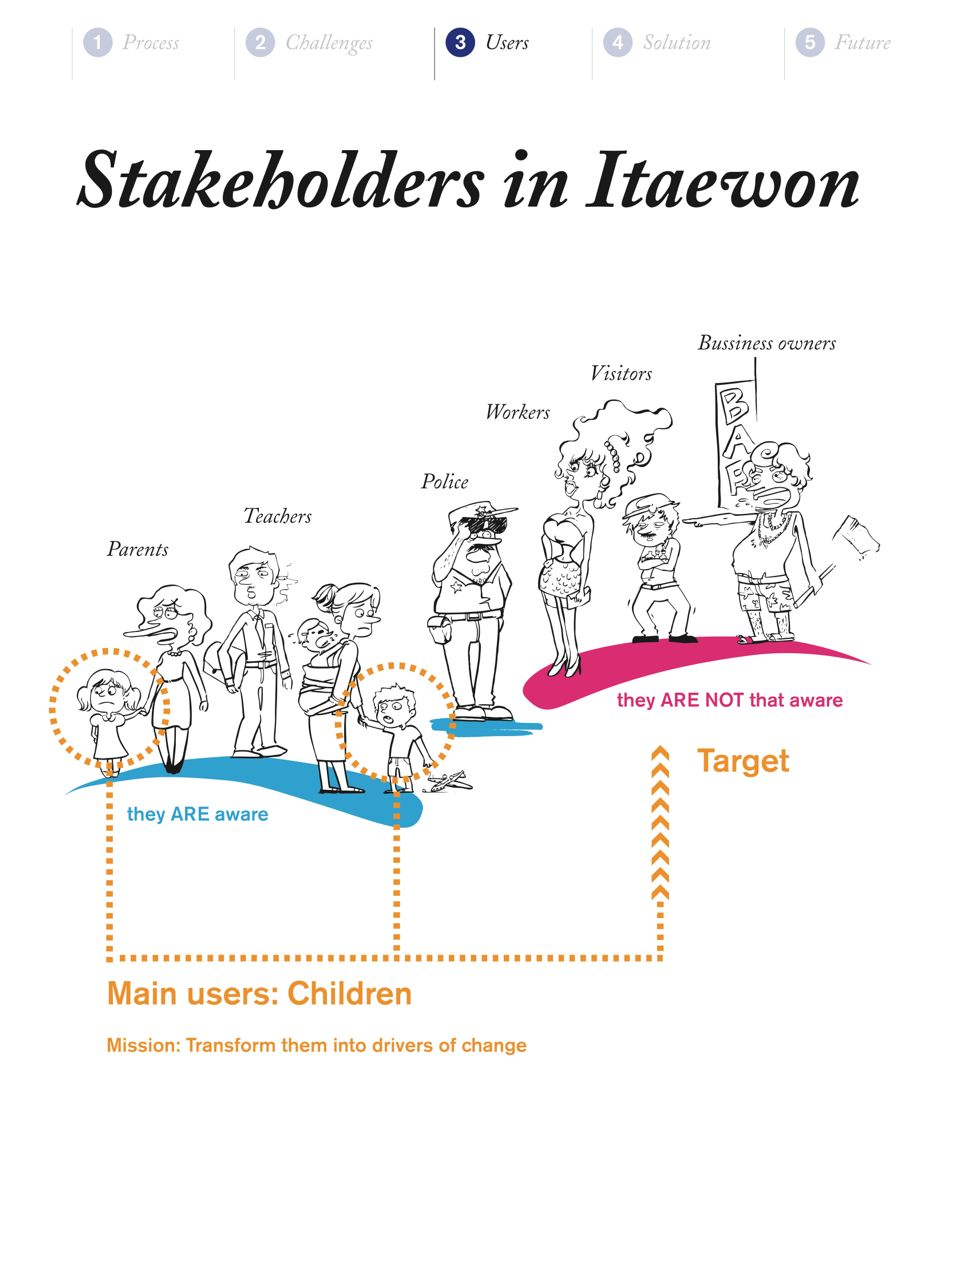 There were different stakeholders in this context, but the target user were the children.